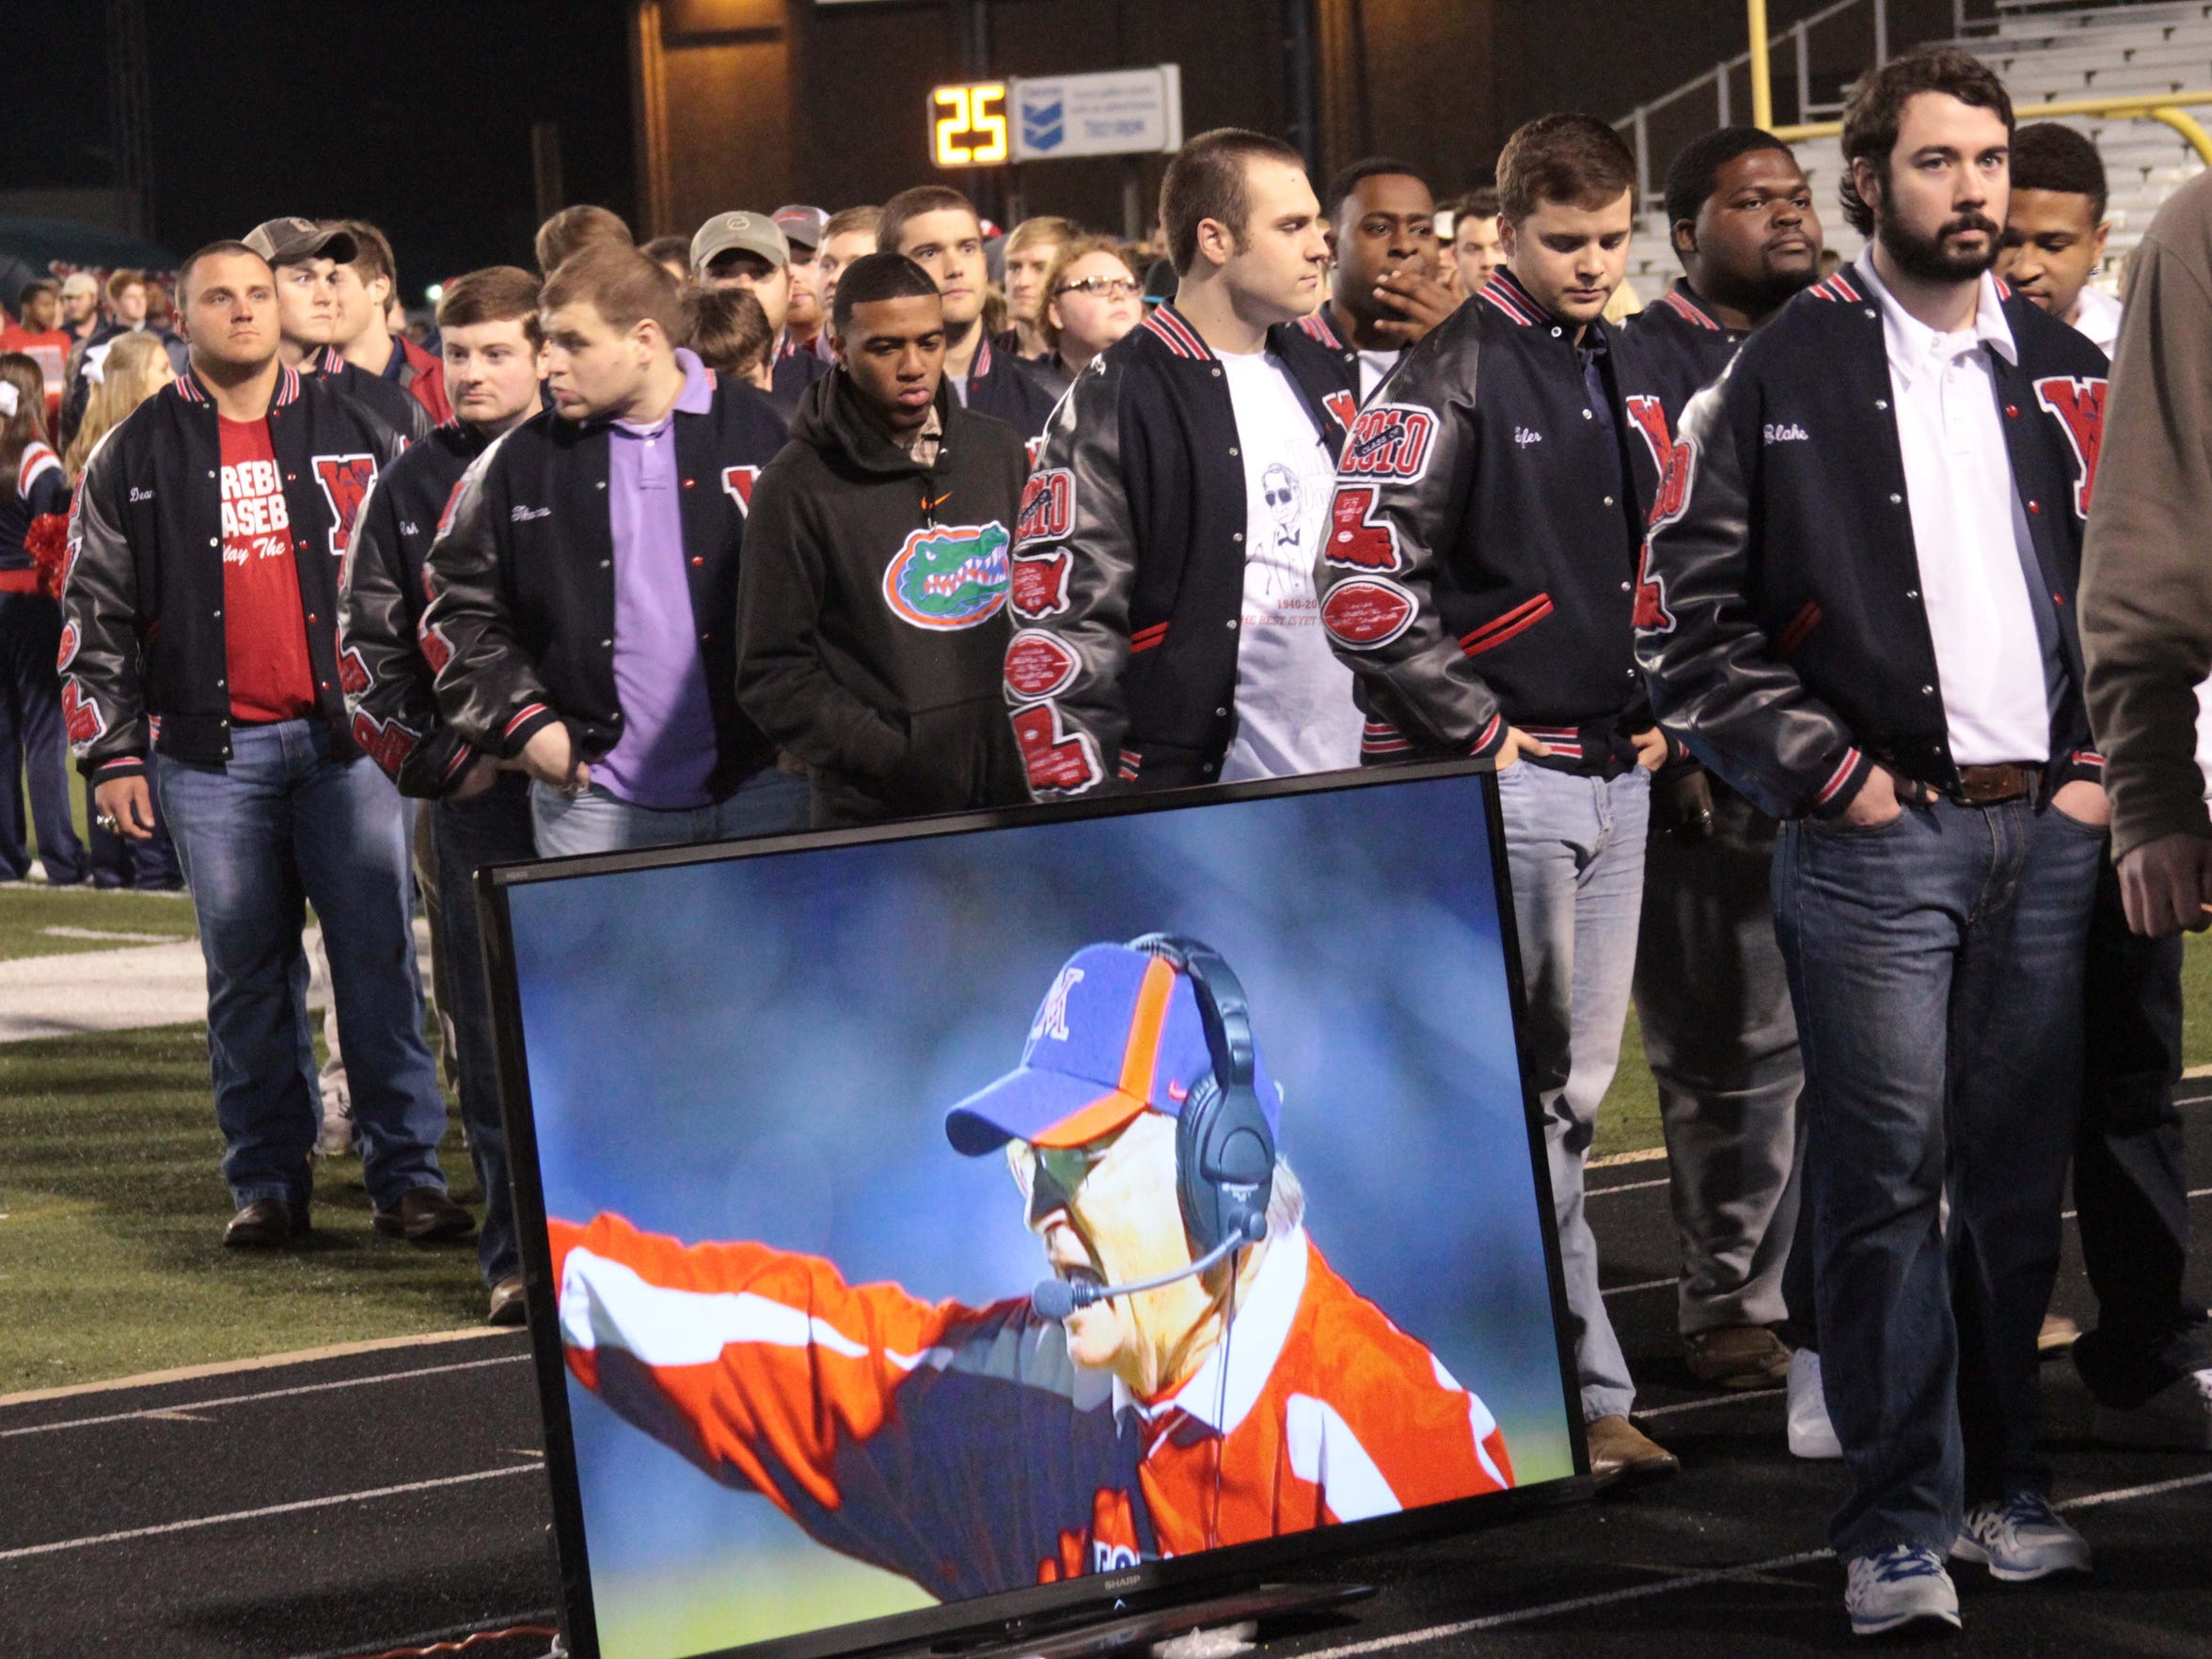 The life of legendary West Monroe coach Don Shows was memorialized at a service in Rebel Stadium on Friday.